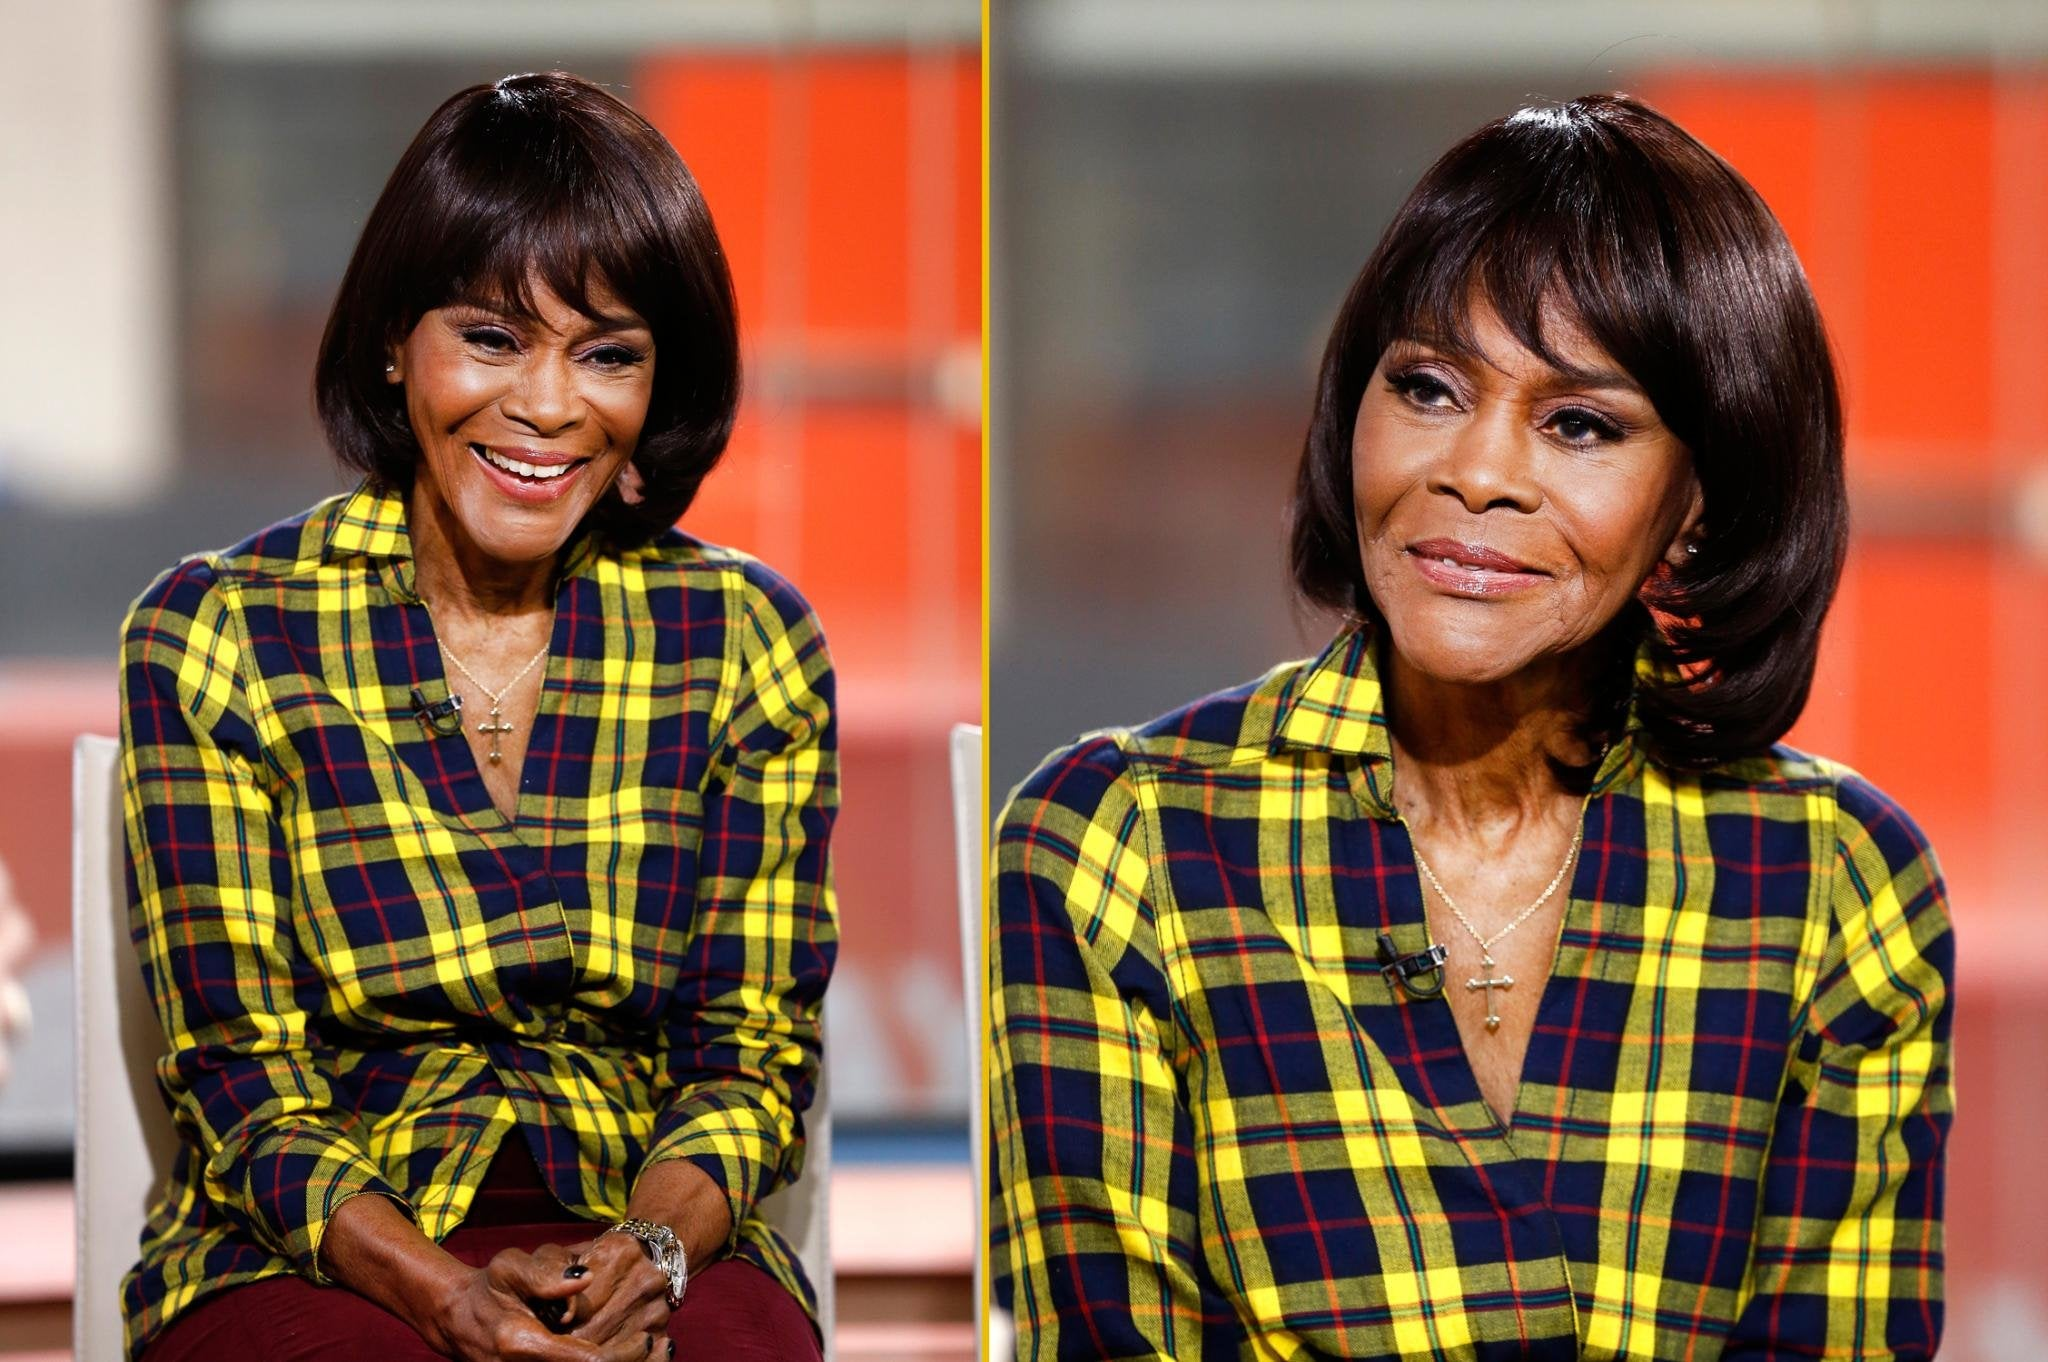 Coffee Talk: Cicely Tyson to Guest Star on 'How to Get Away With Murder'